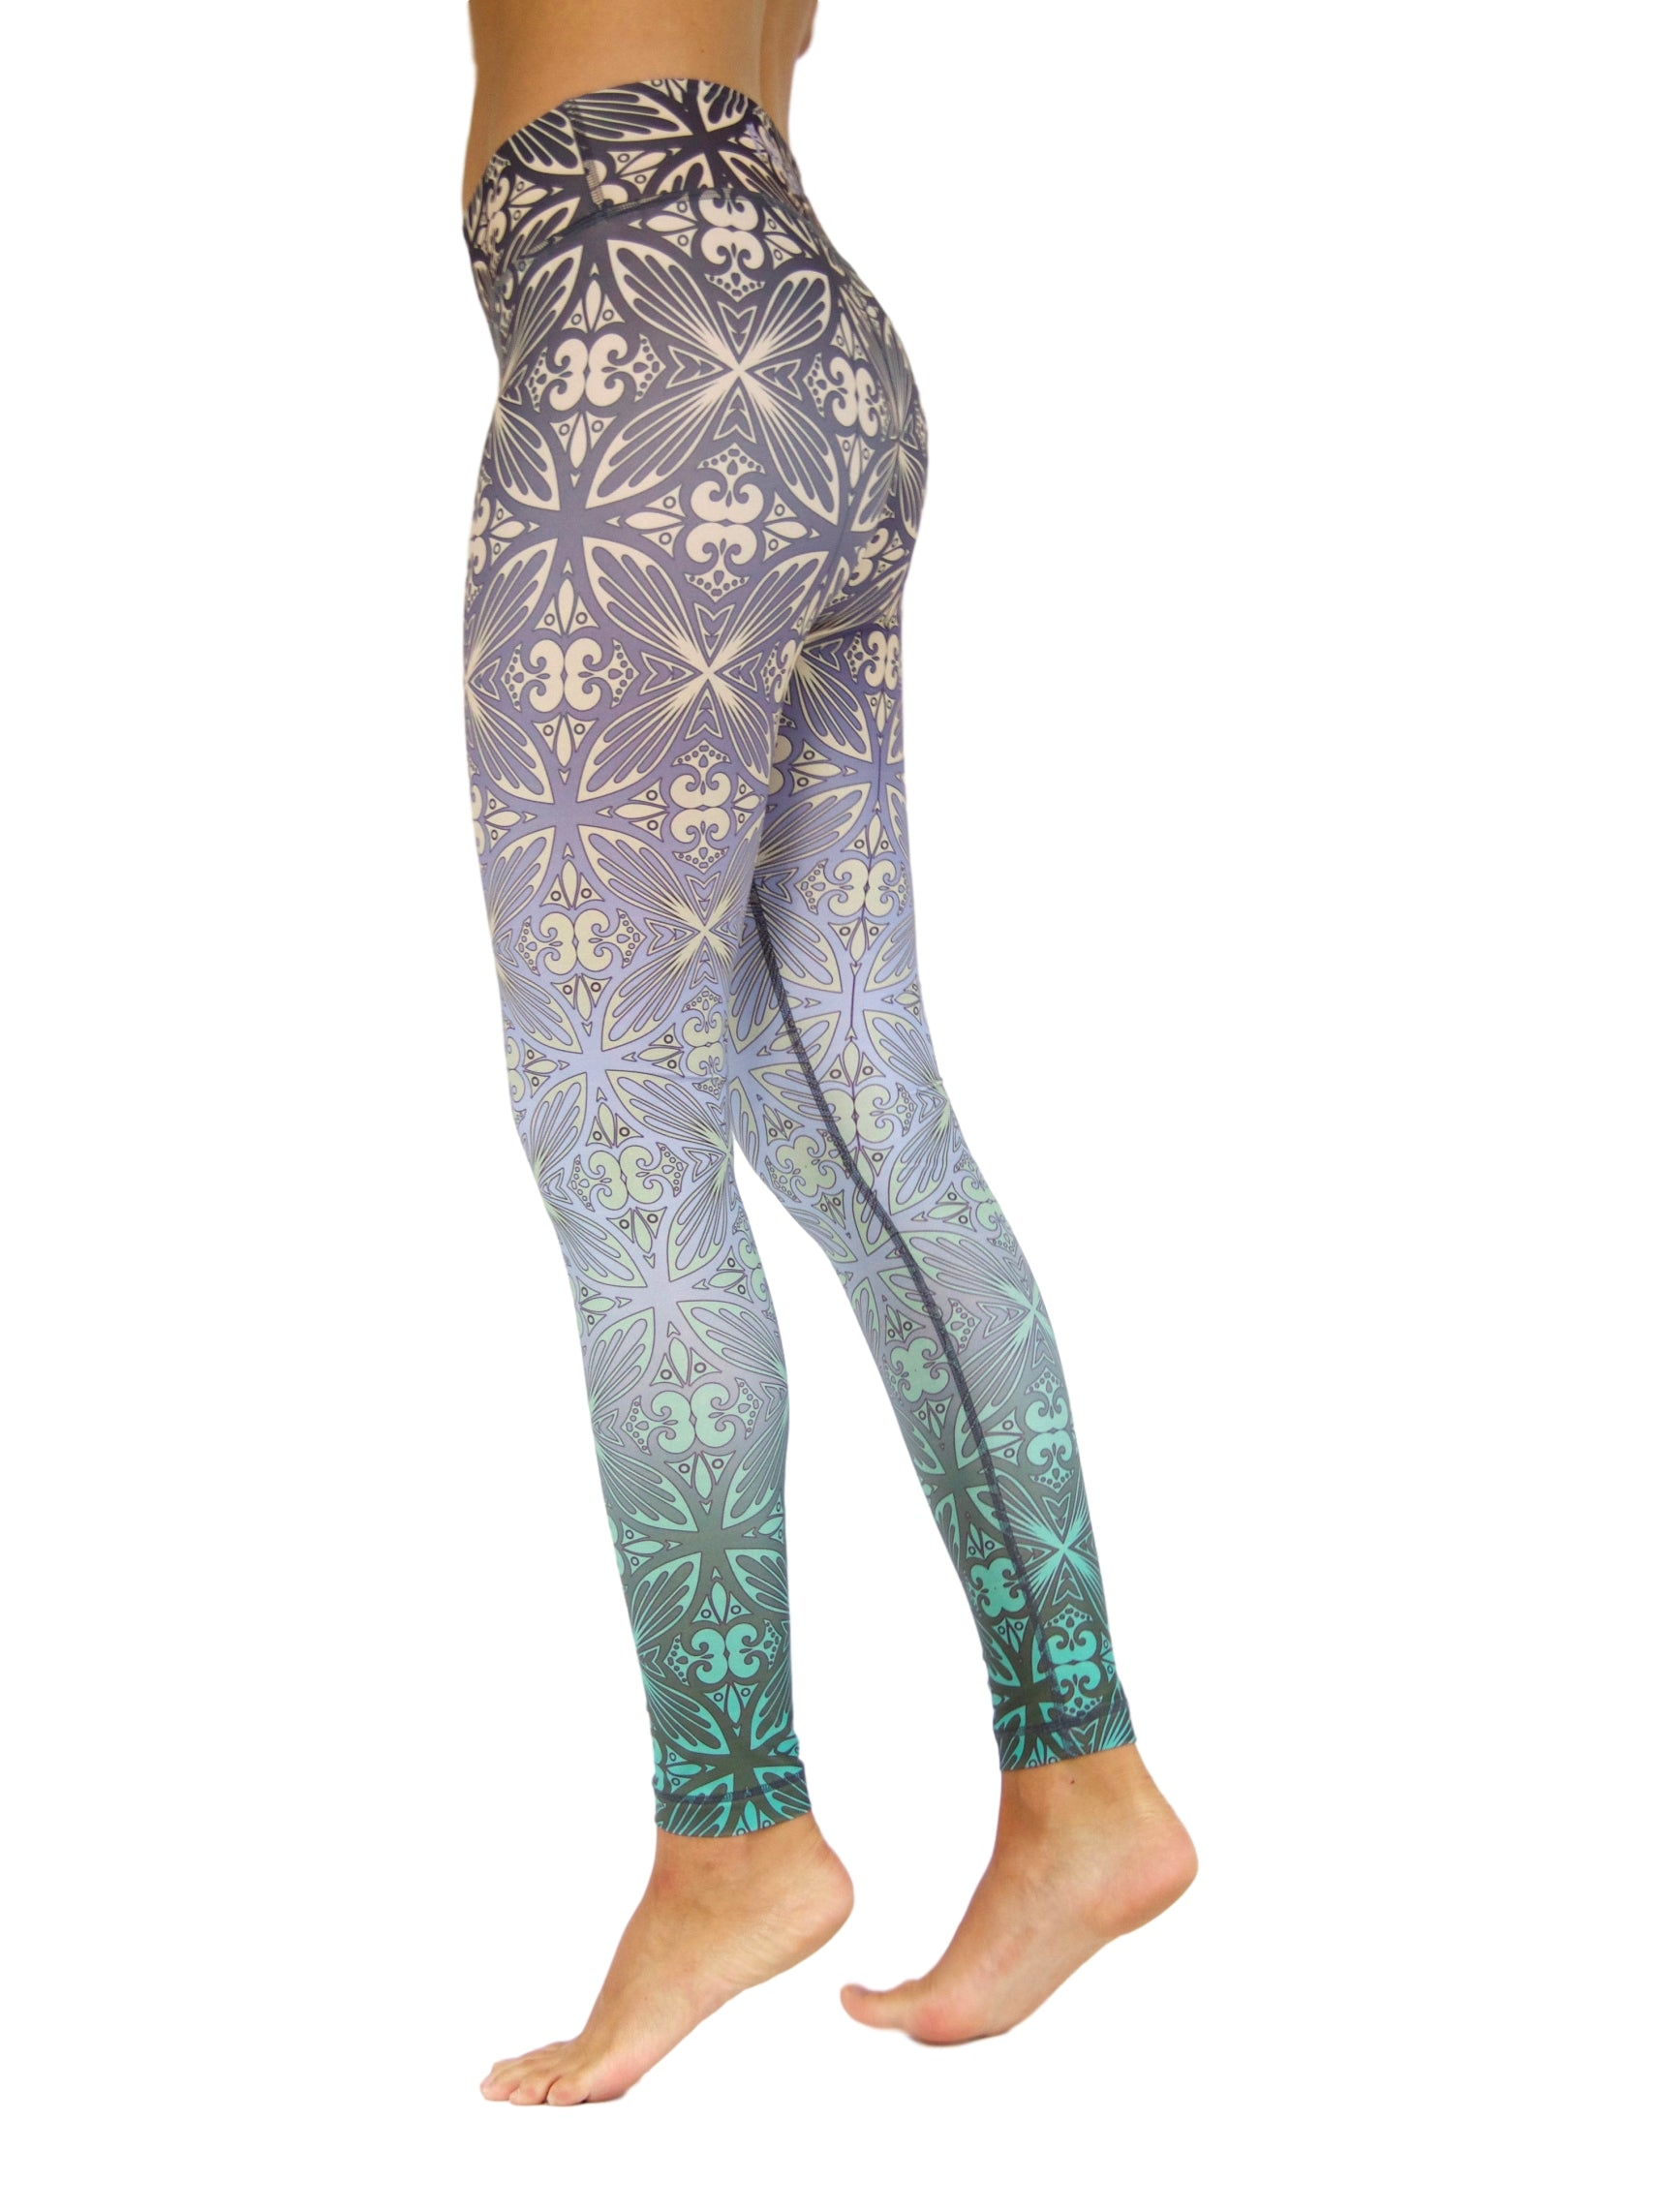 Tahitian Days by Niyama - High Quality, , Yoga Legging for Movement Artists.